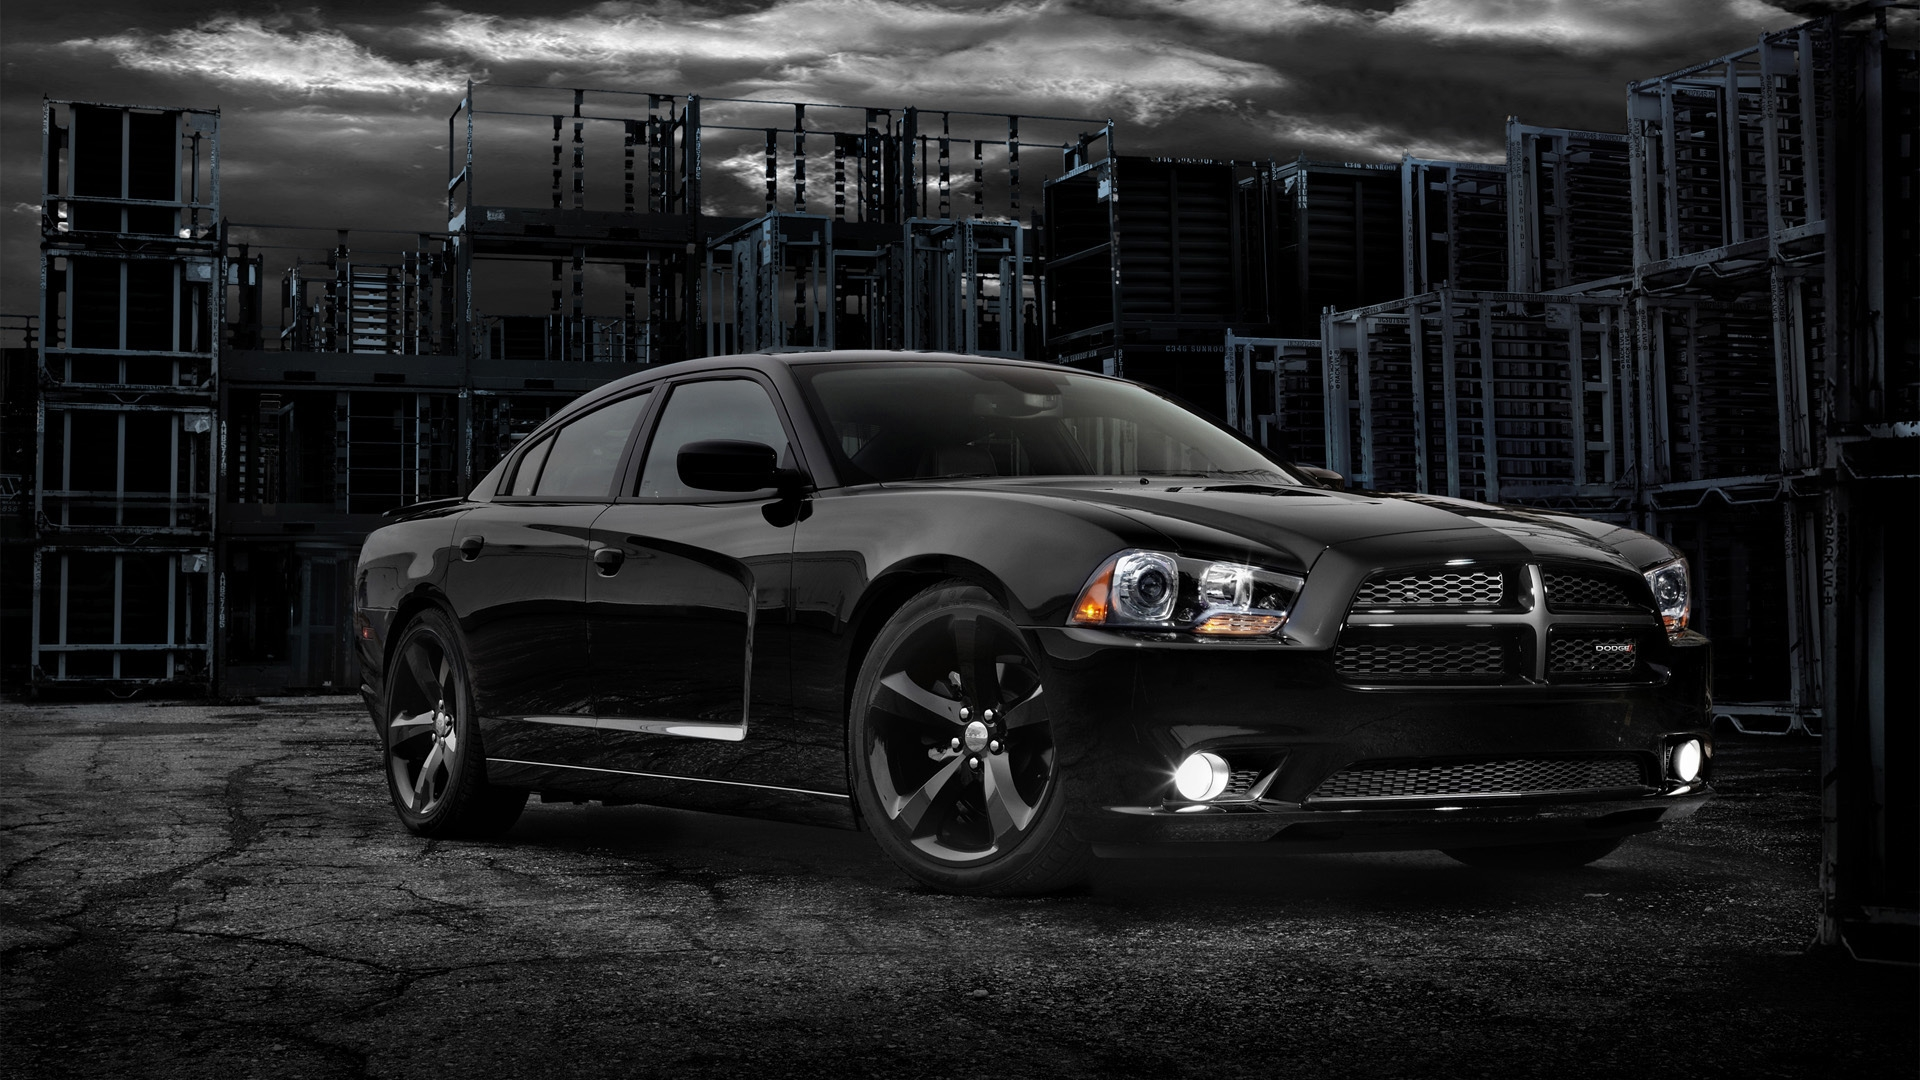 ... Dodge Wallpaper · Dodge Wallpaper